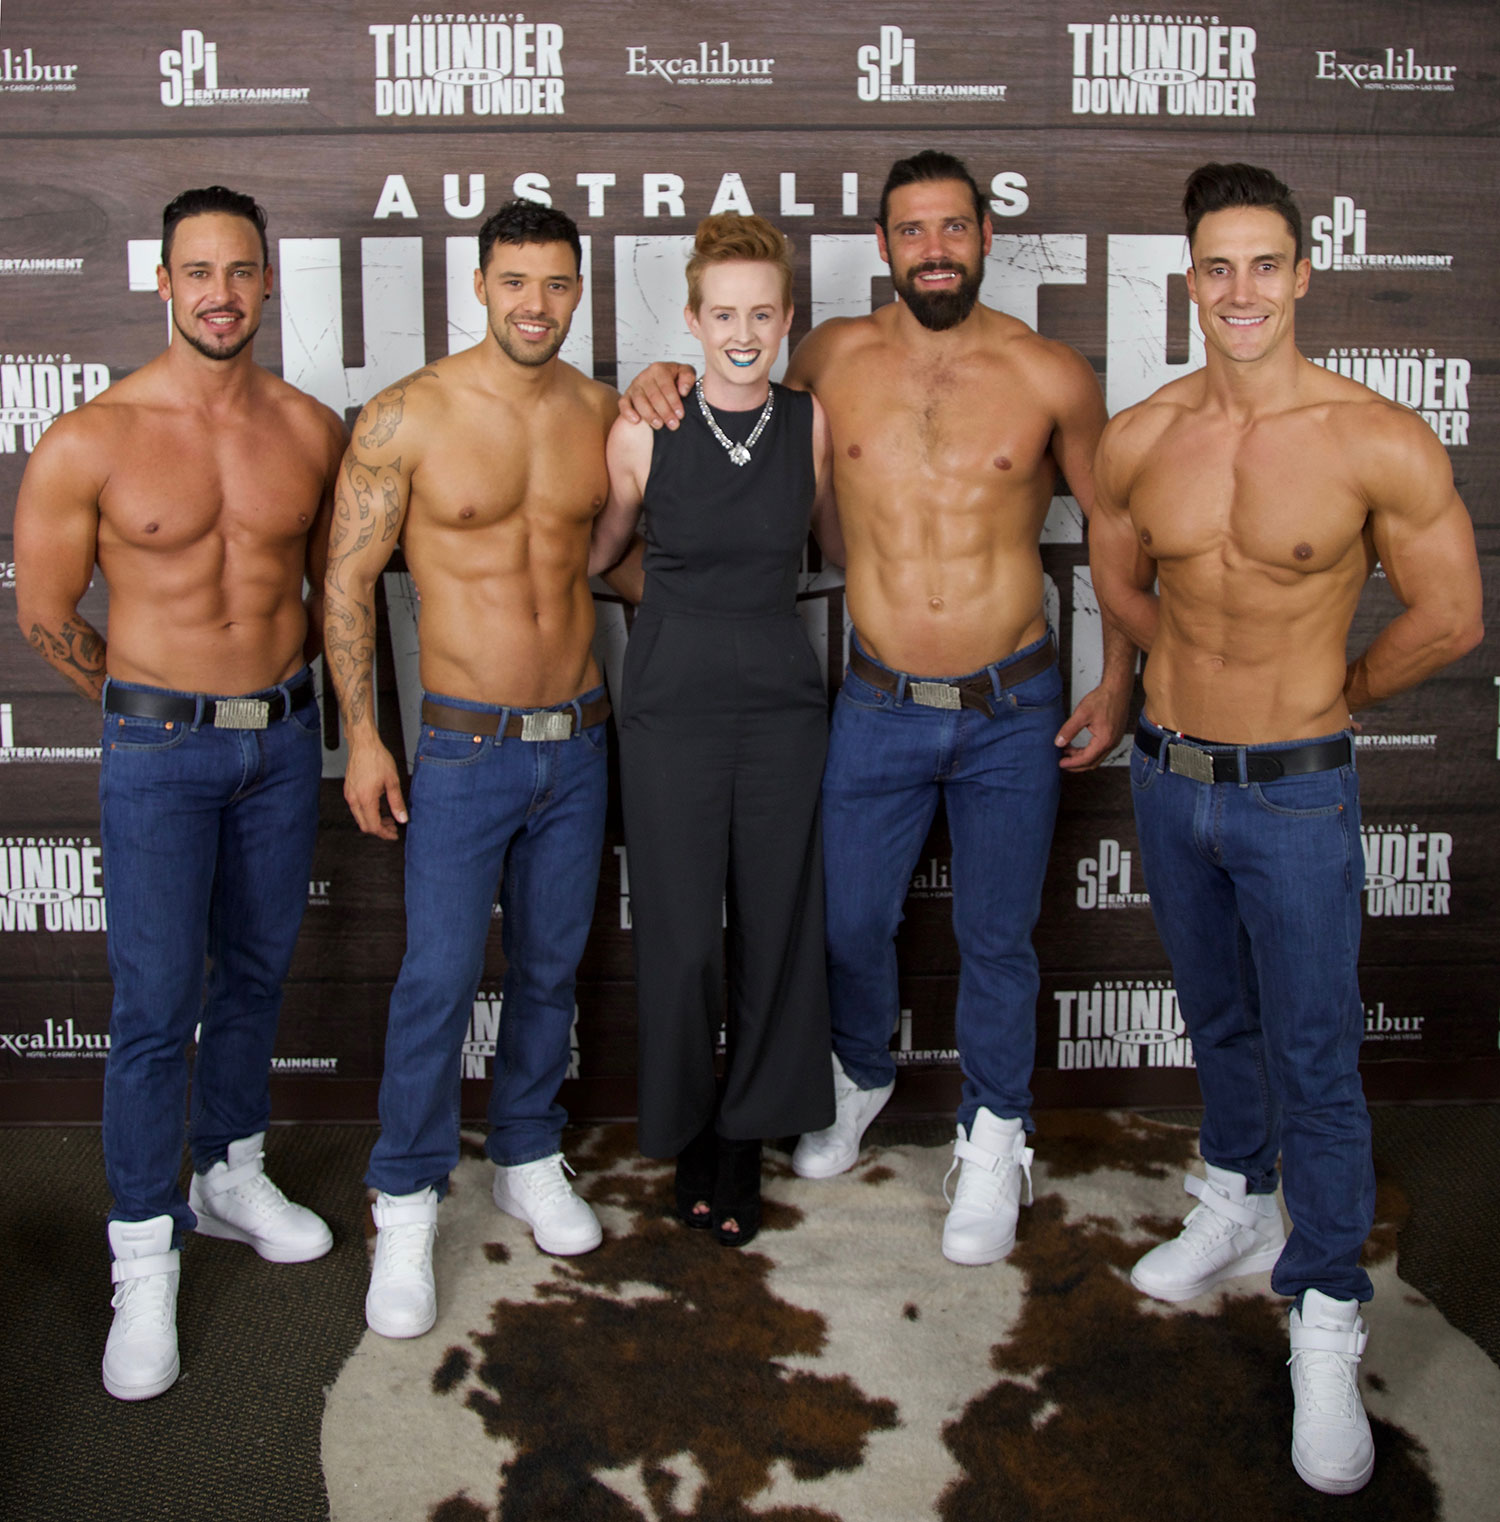 Thunder From Down Under - Pre-Show Group shot, male revue